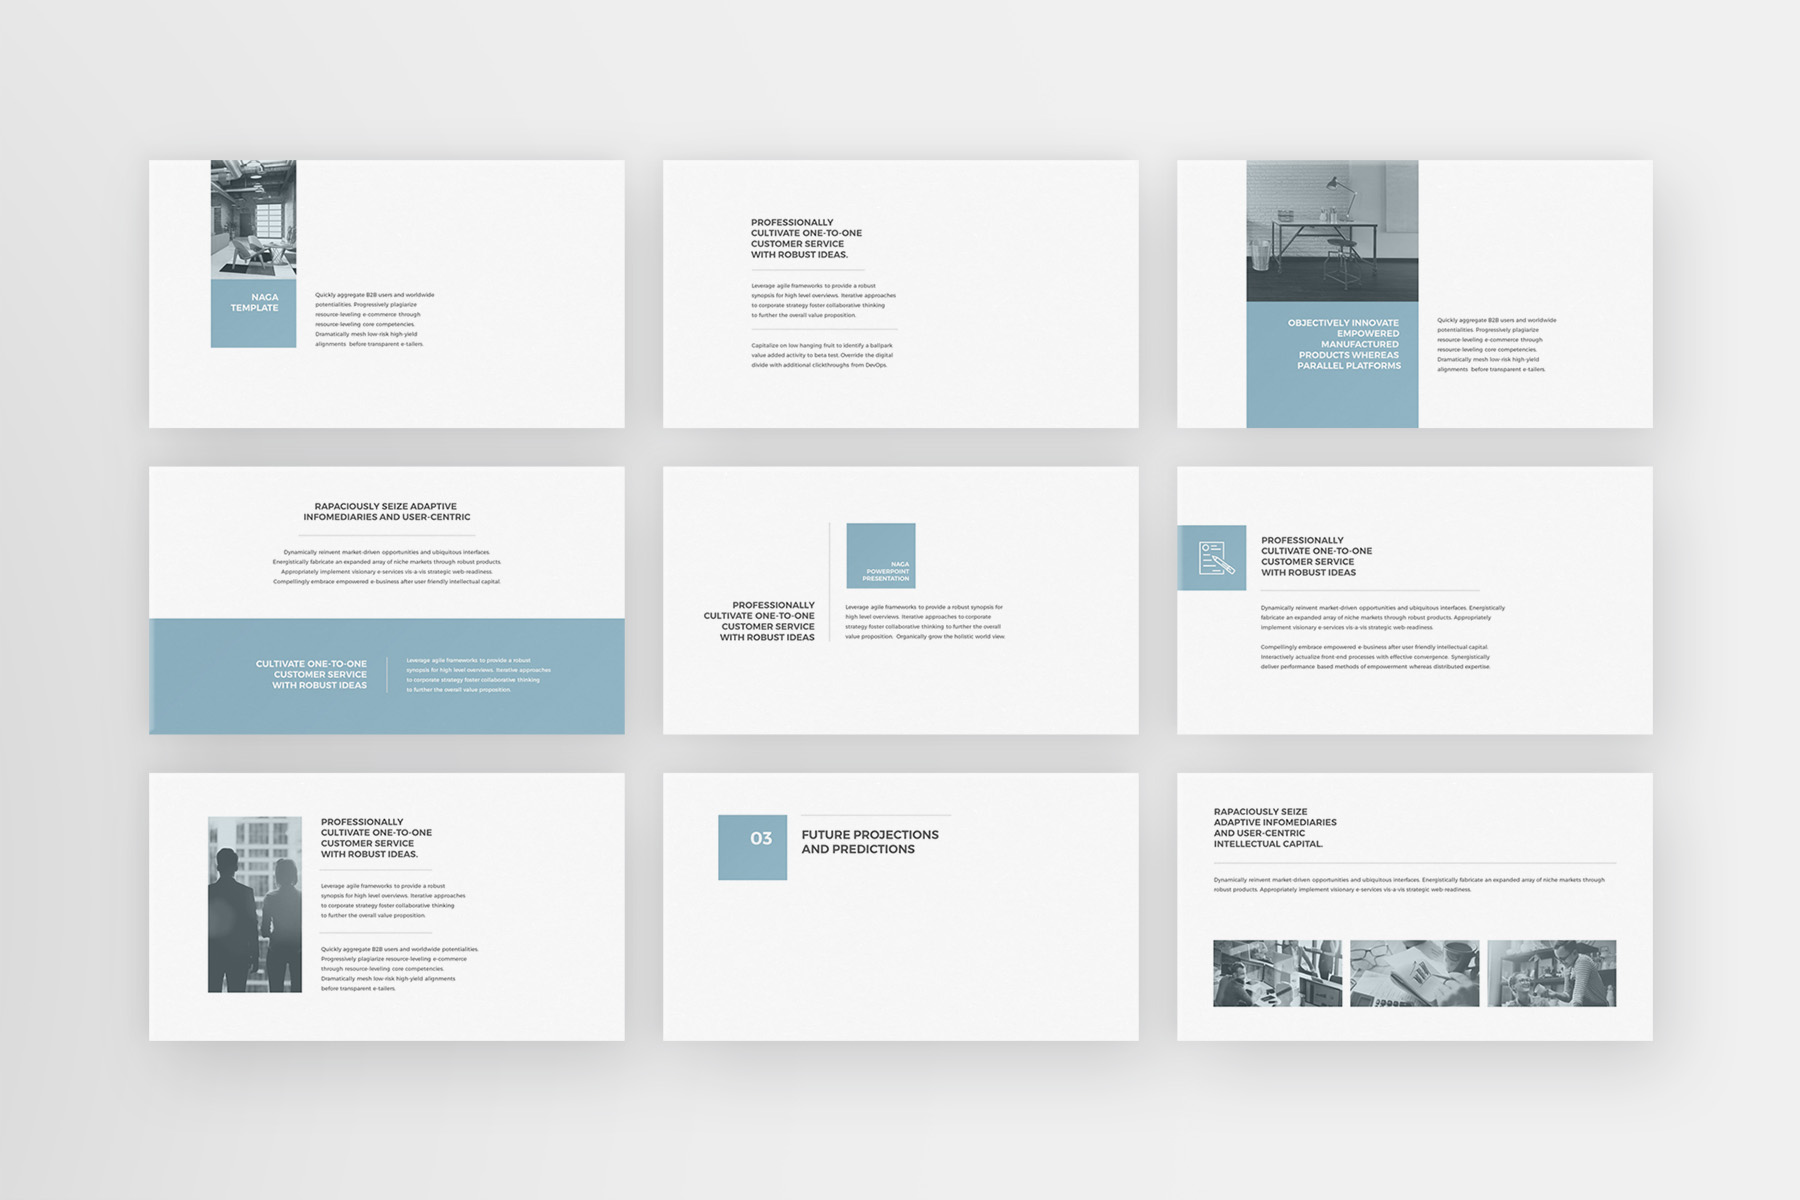 Naga - PowerPoint Template example image 4